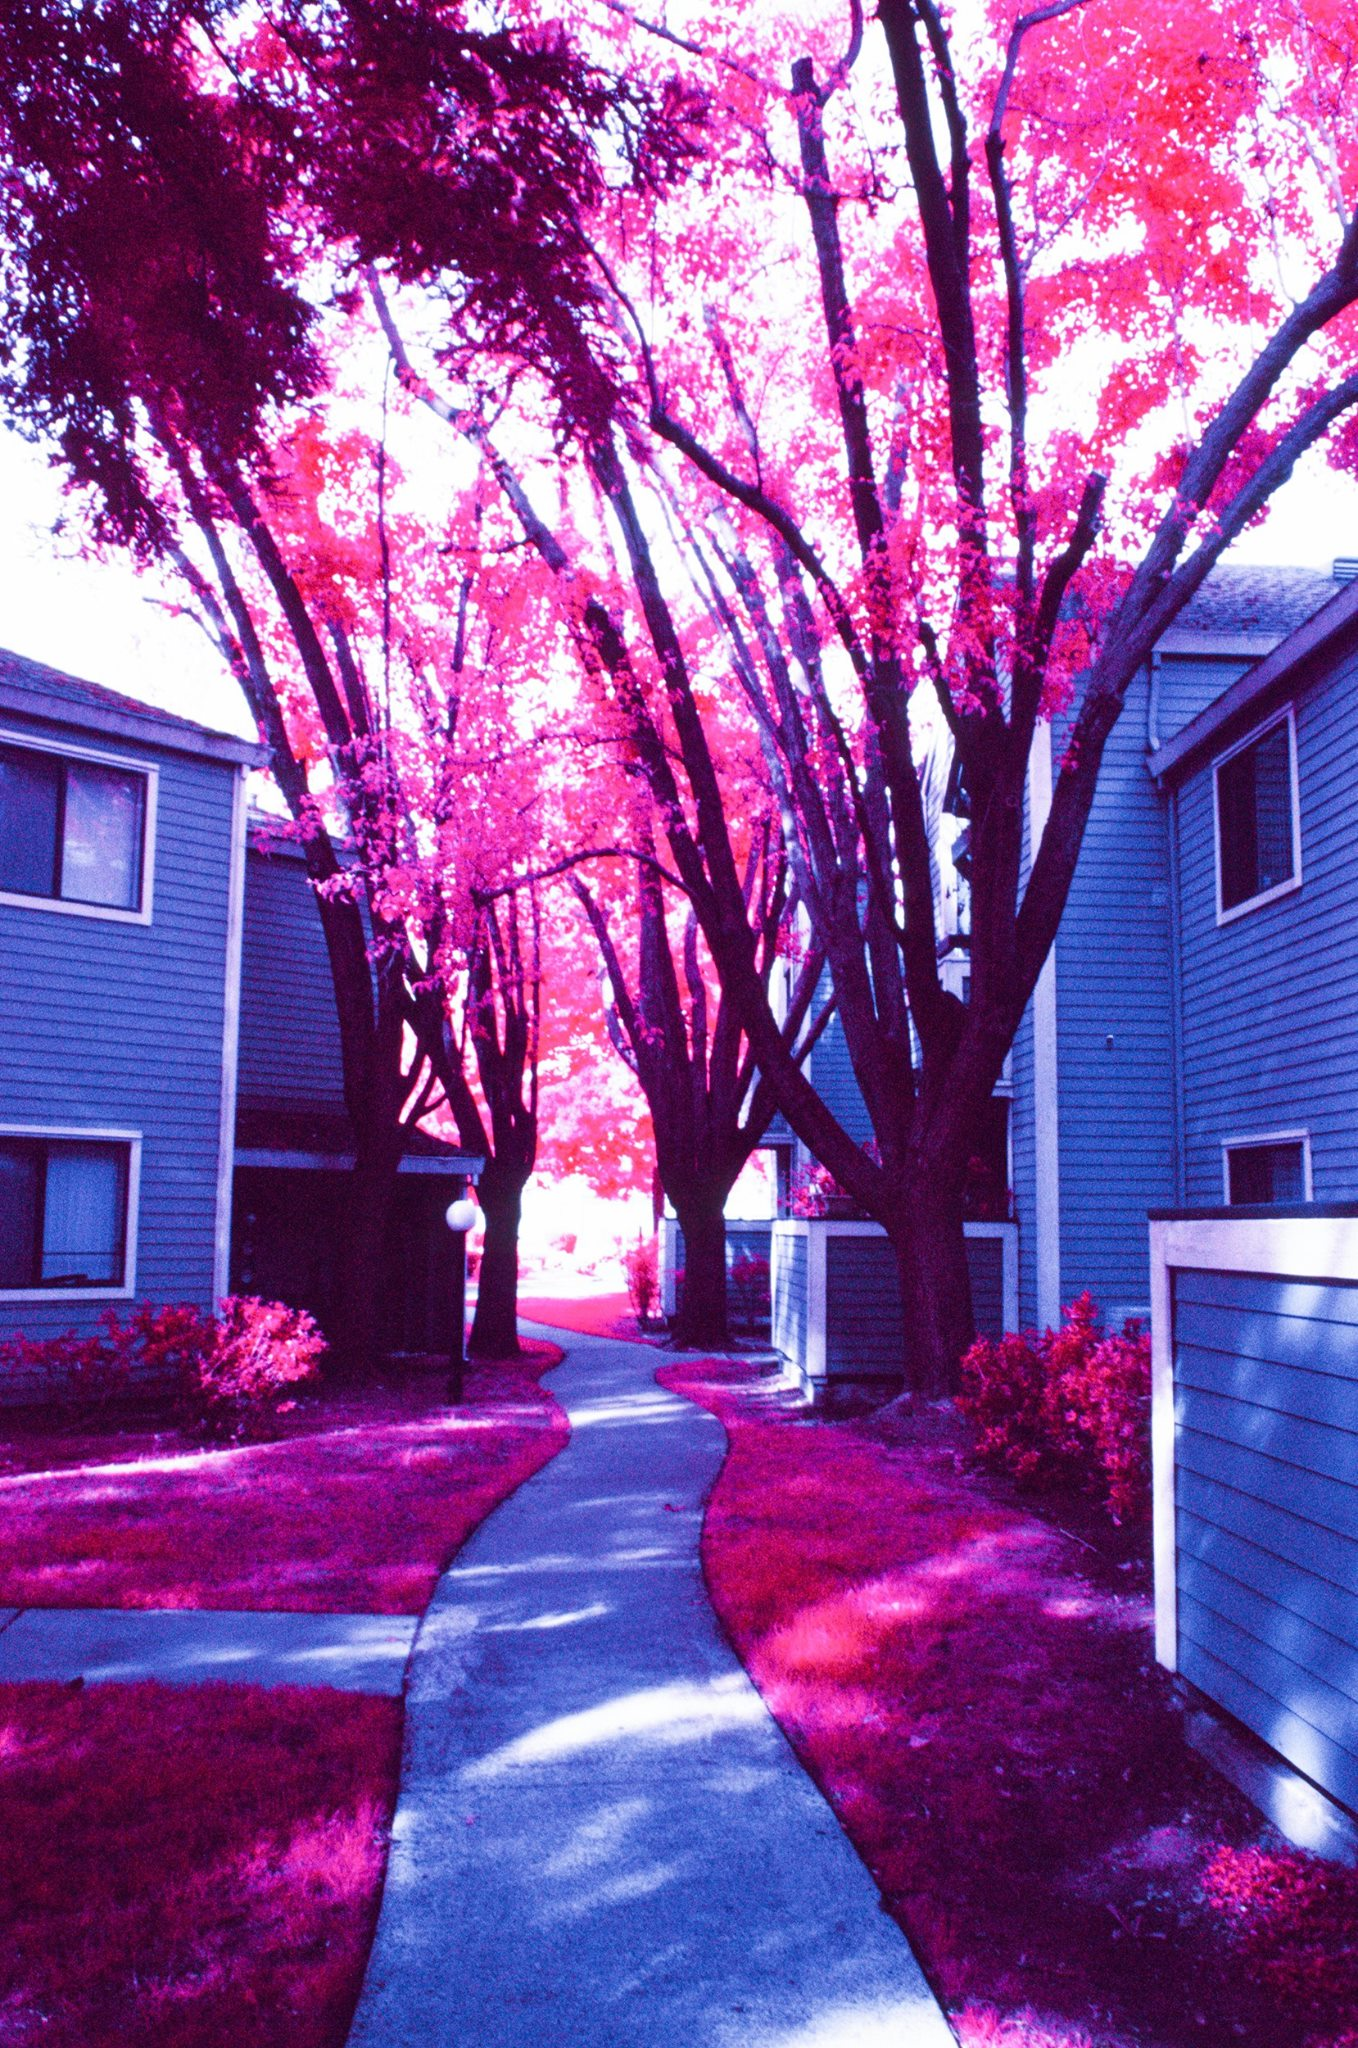 Infrared Film Photo shot with FPP InfraChrome Color Infrared Film and a #12 yellow filter.